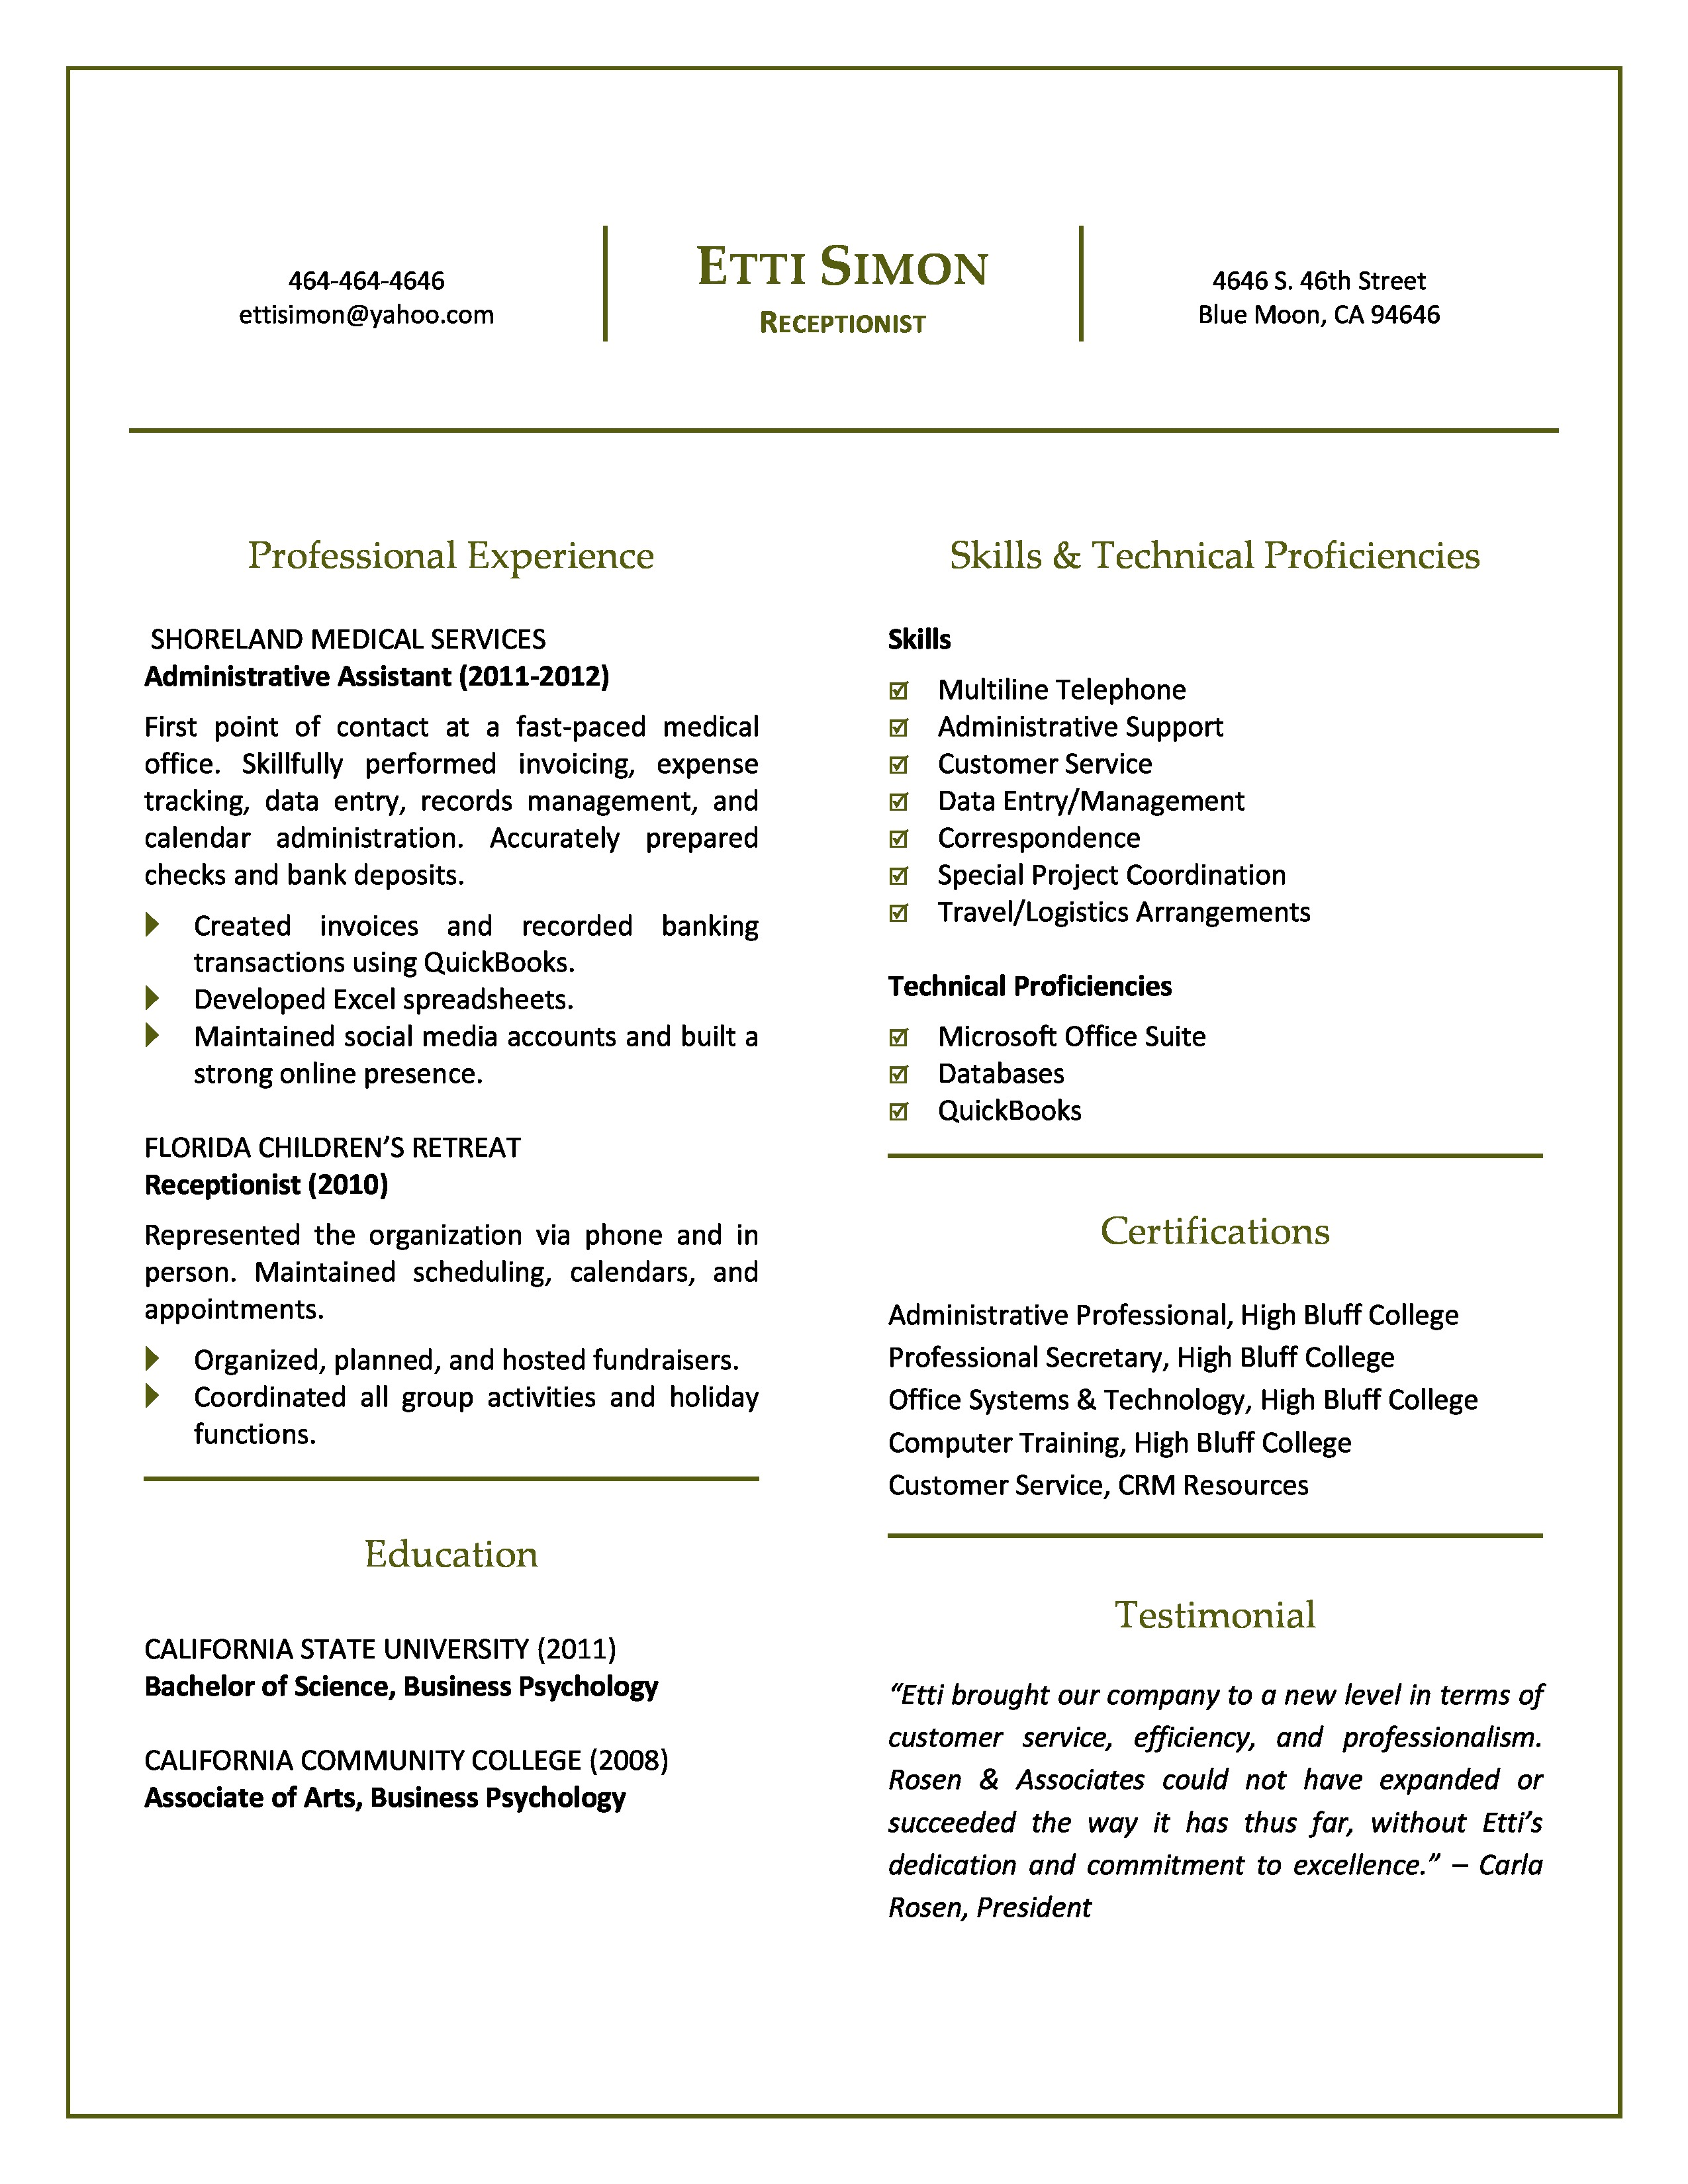 Premier Student/Entry-Level Resume Package | A Vita Career Management